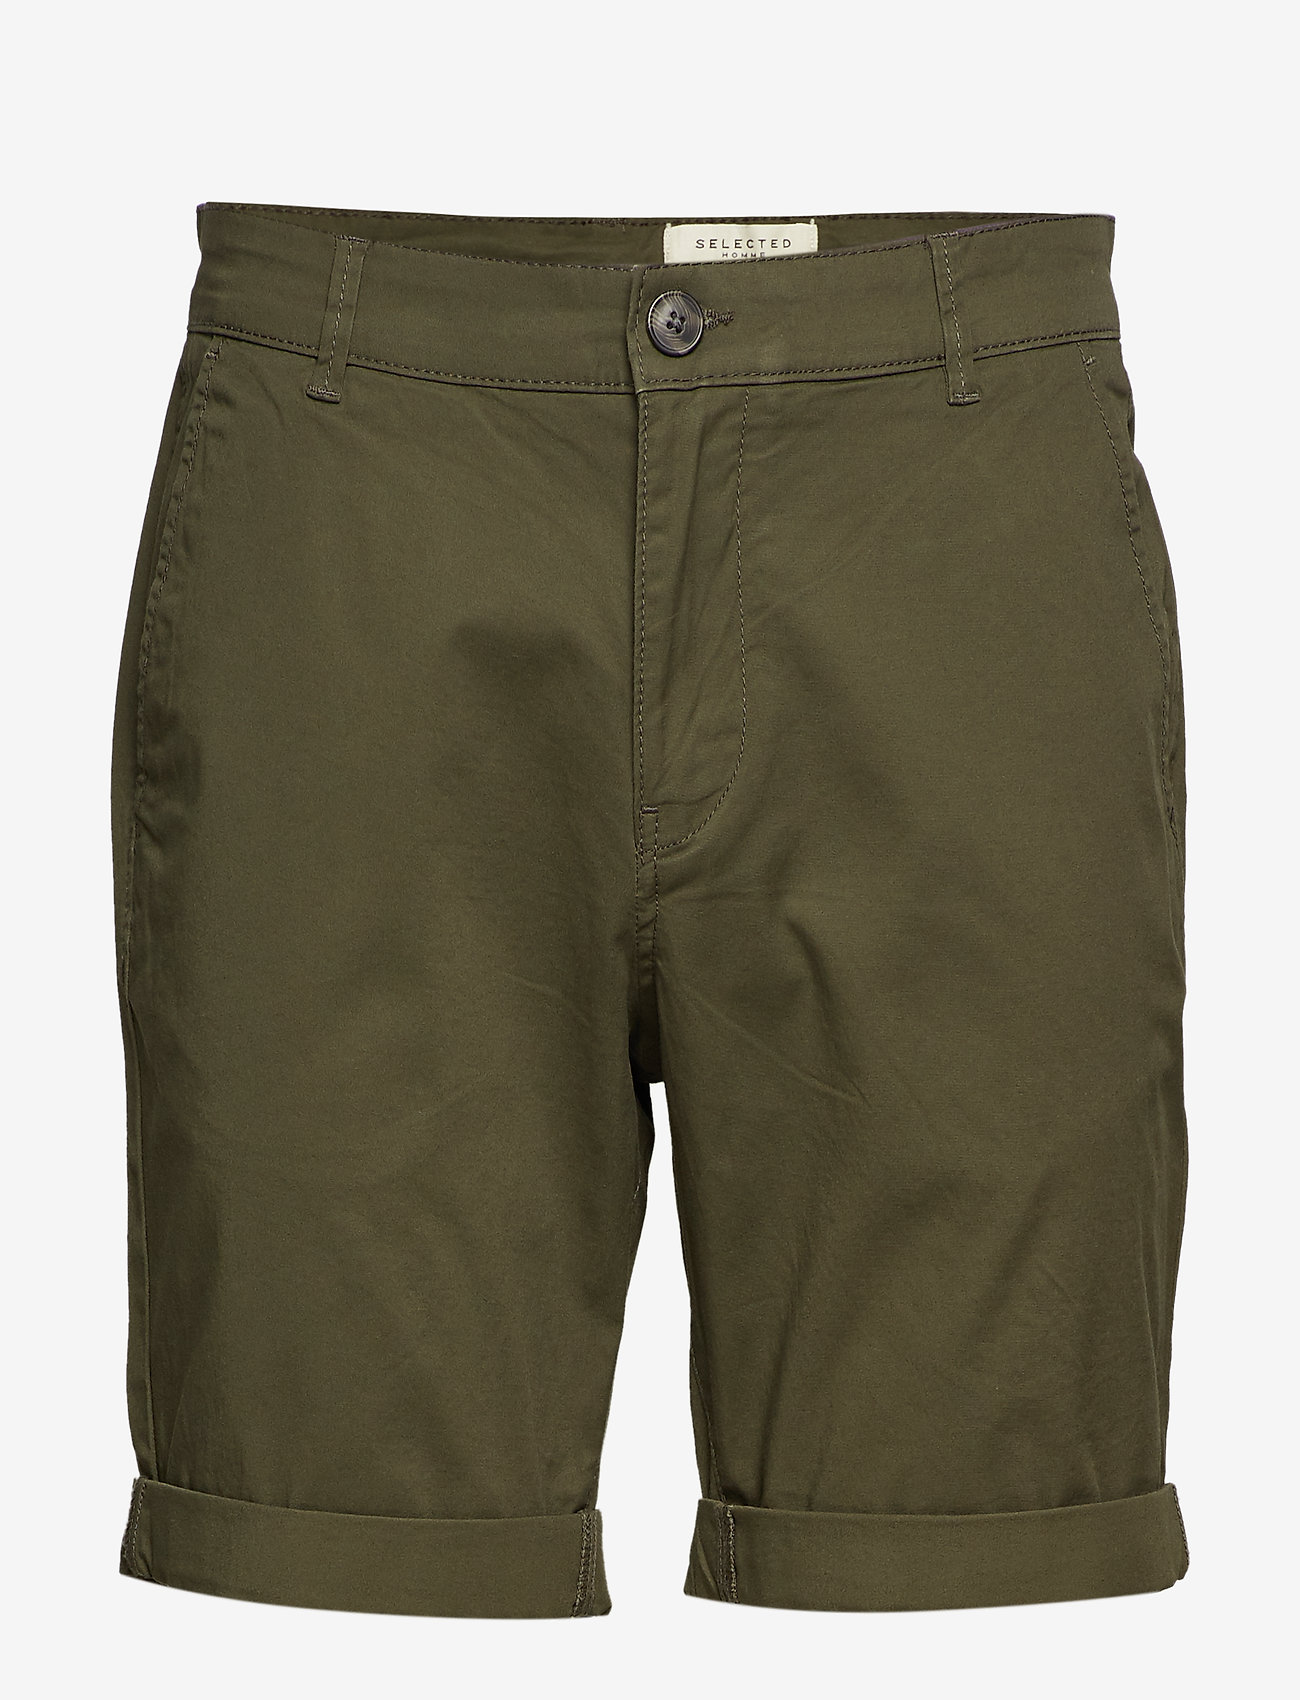 Selected Homme - SLHSTRAIGHT-PARIS SHORTS W NOOS - chino's shorts - deep depths - 0